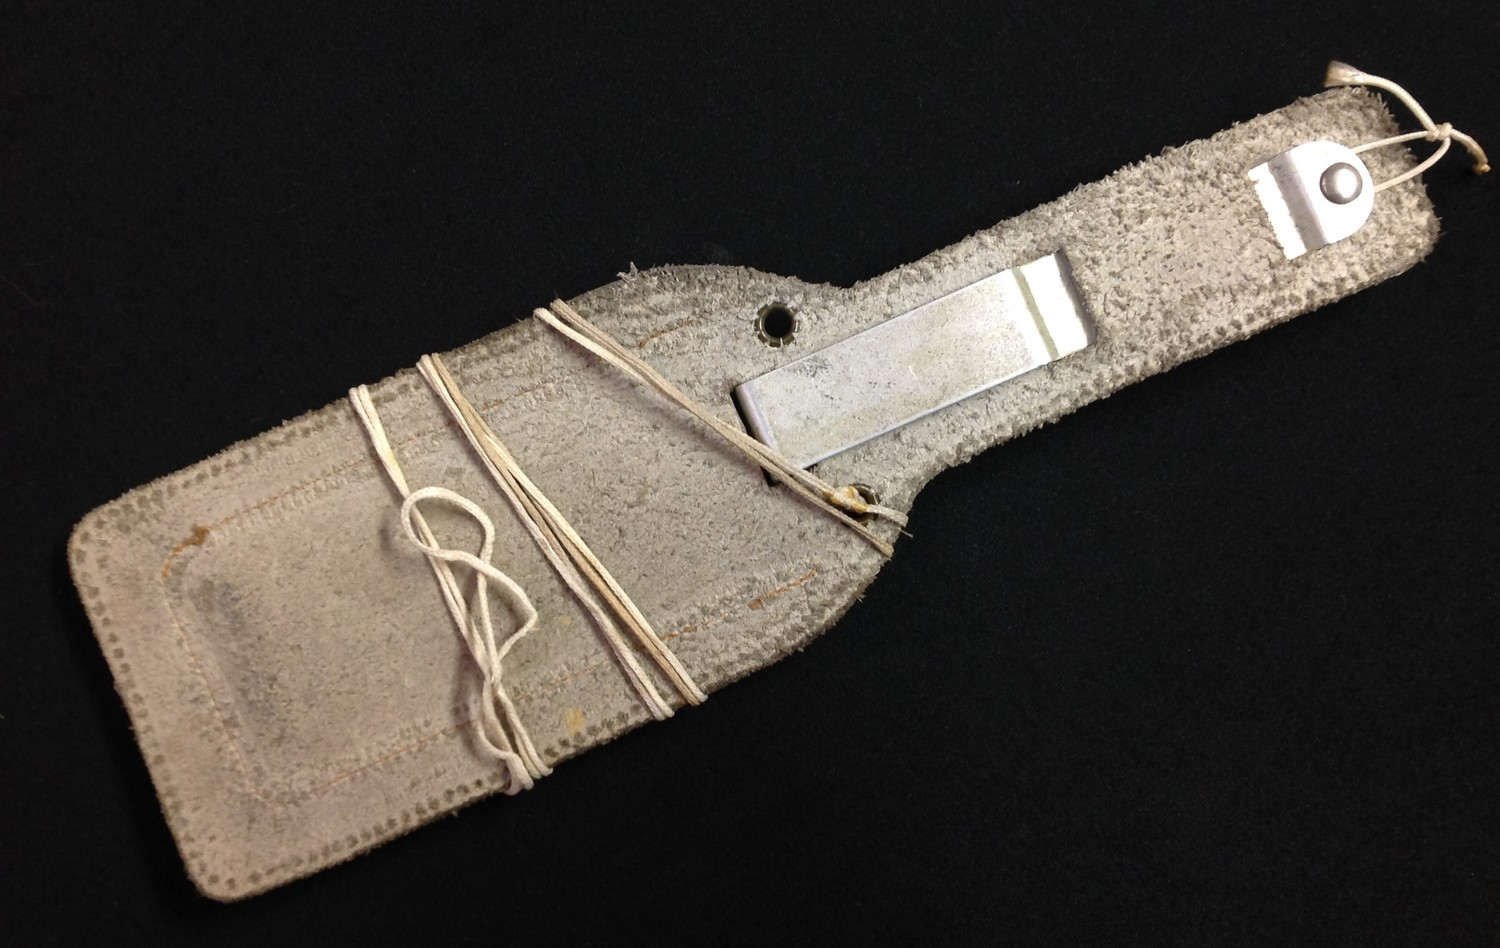 Post War British Joseph Rodgers Aircrew Emergency Knife with curved 100mm long single edged blade - Image 2 of 6